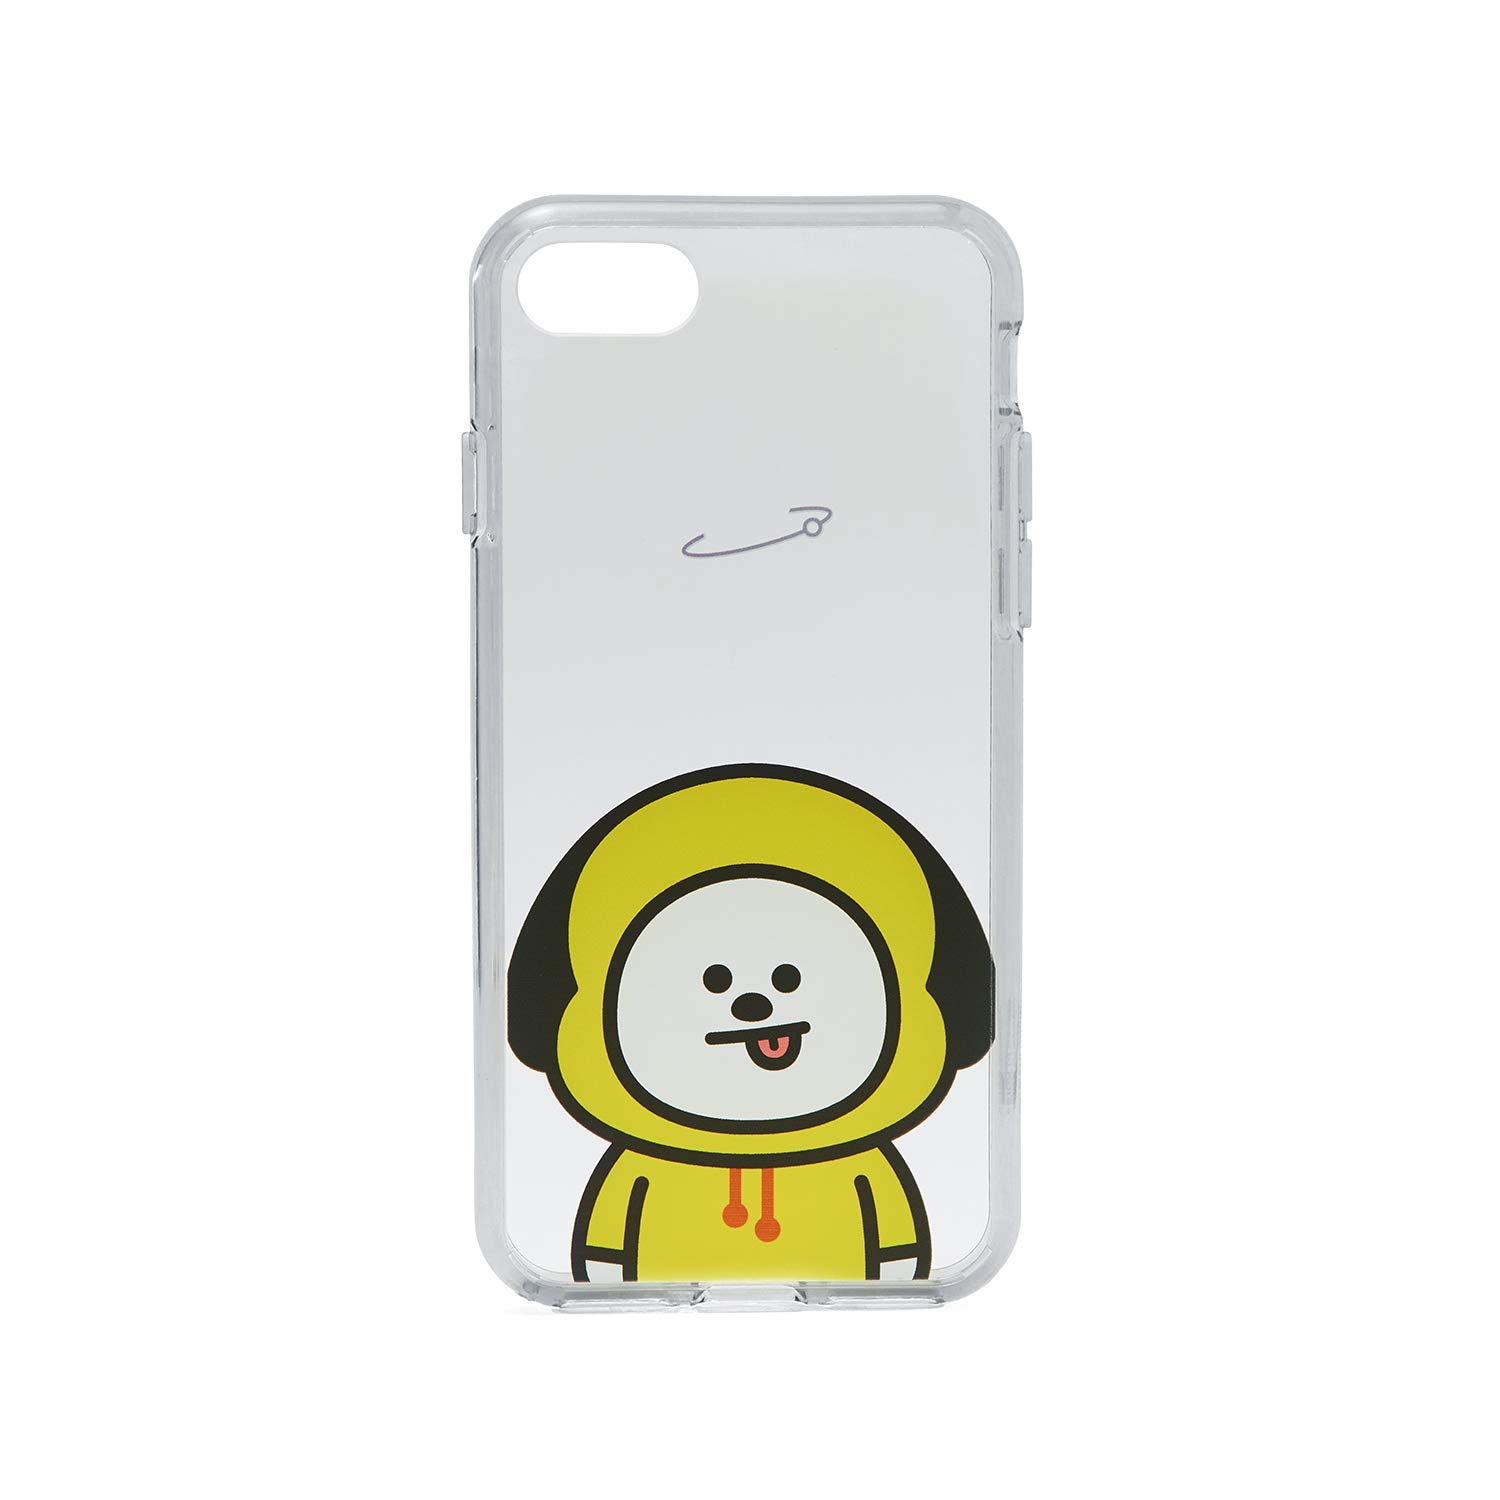 size 40 73b63 33e3d BT21 Official Merchandise by Line Friends - CHIMMY Character Clear Case for  iPhone 8 / iPhone 7, Yellow